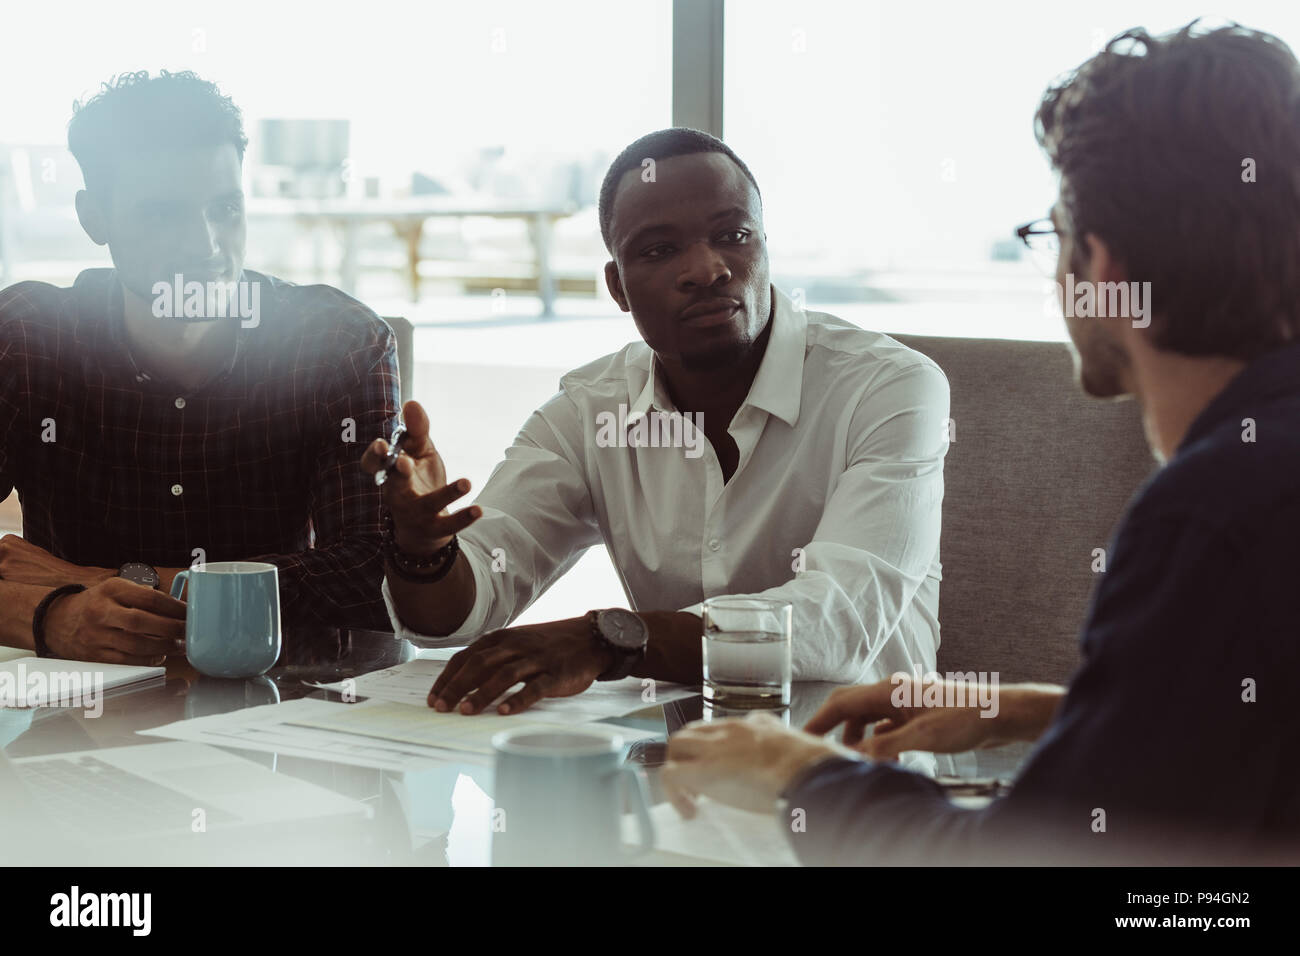 Businessmen discussing work sitting at a conference table in office. Three men in a formal business meeting discussing work. - Stock Image